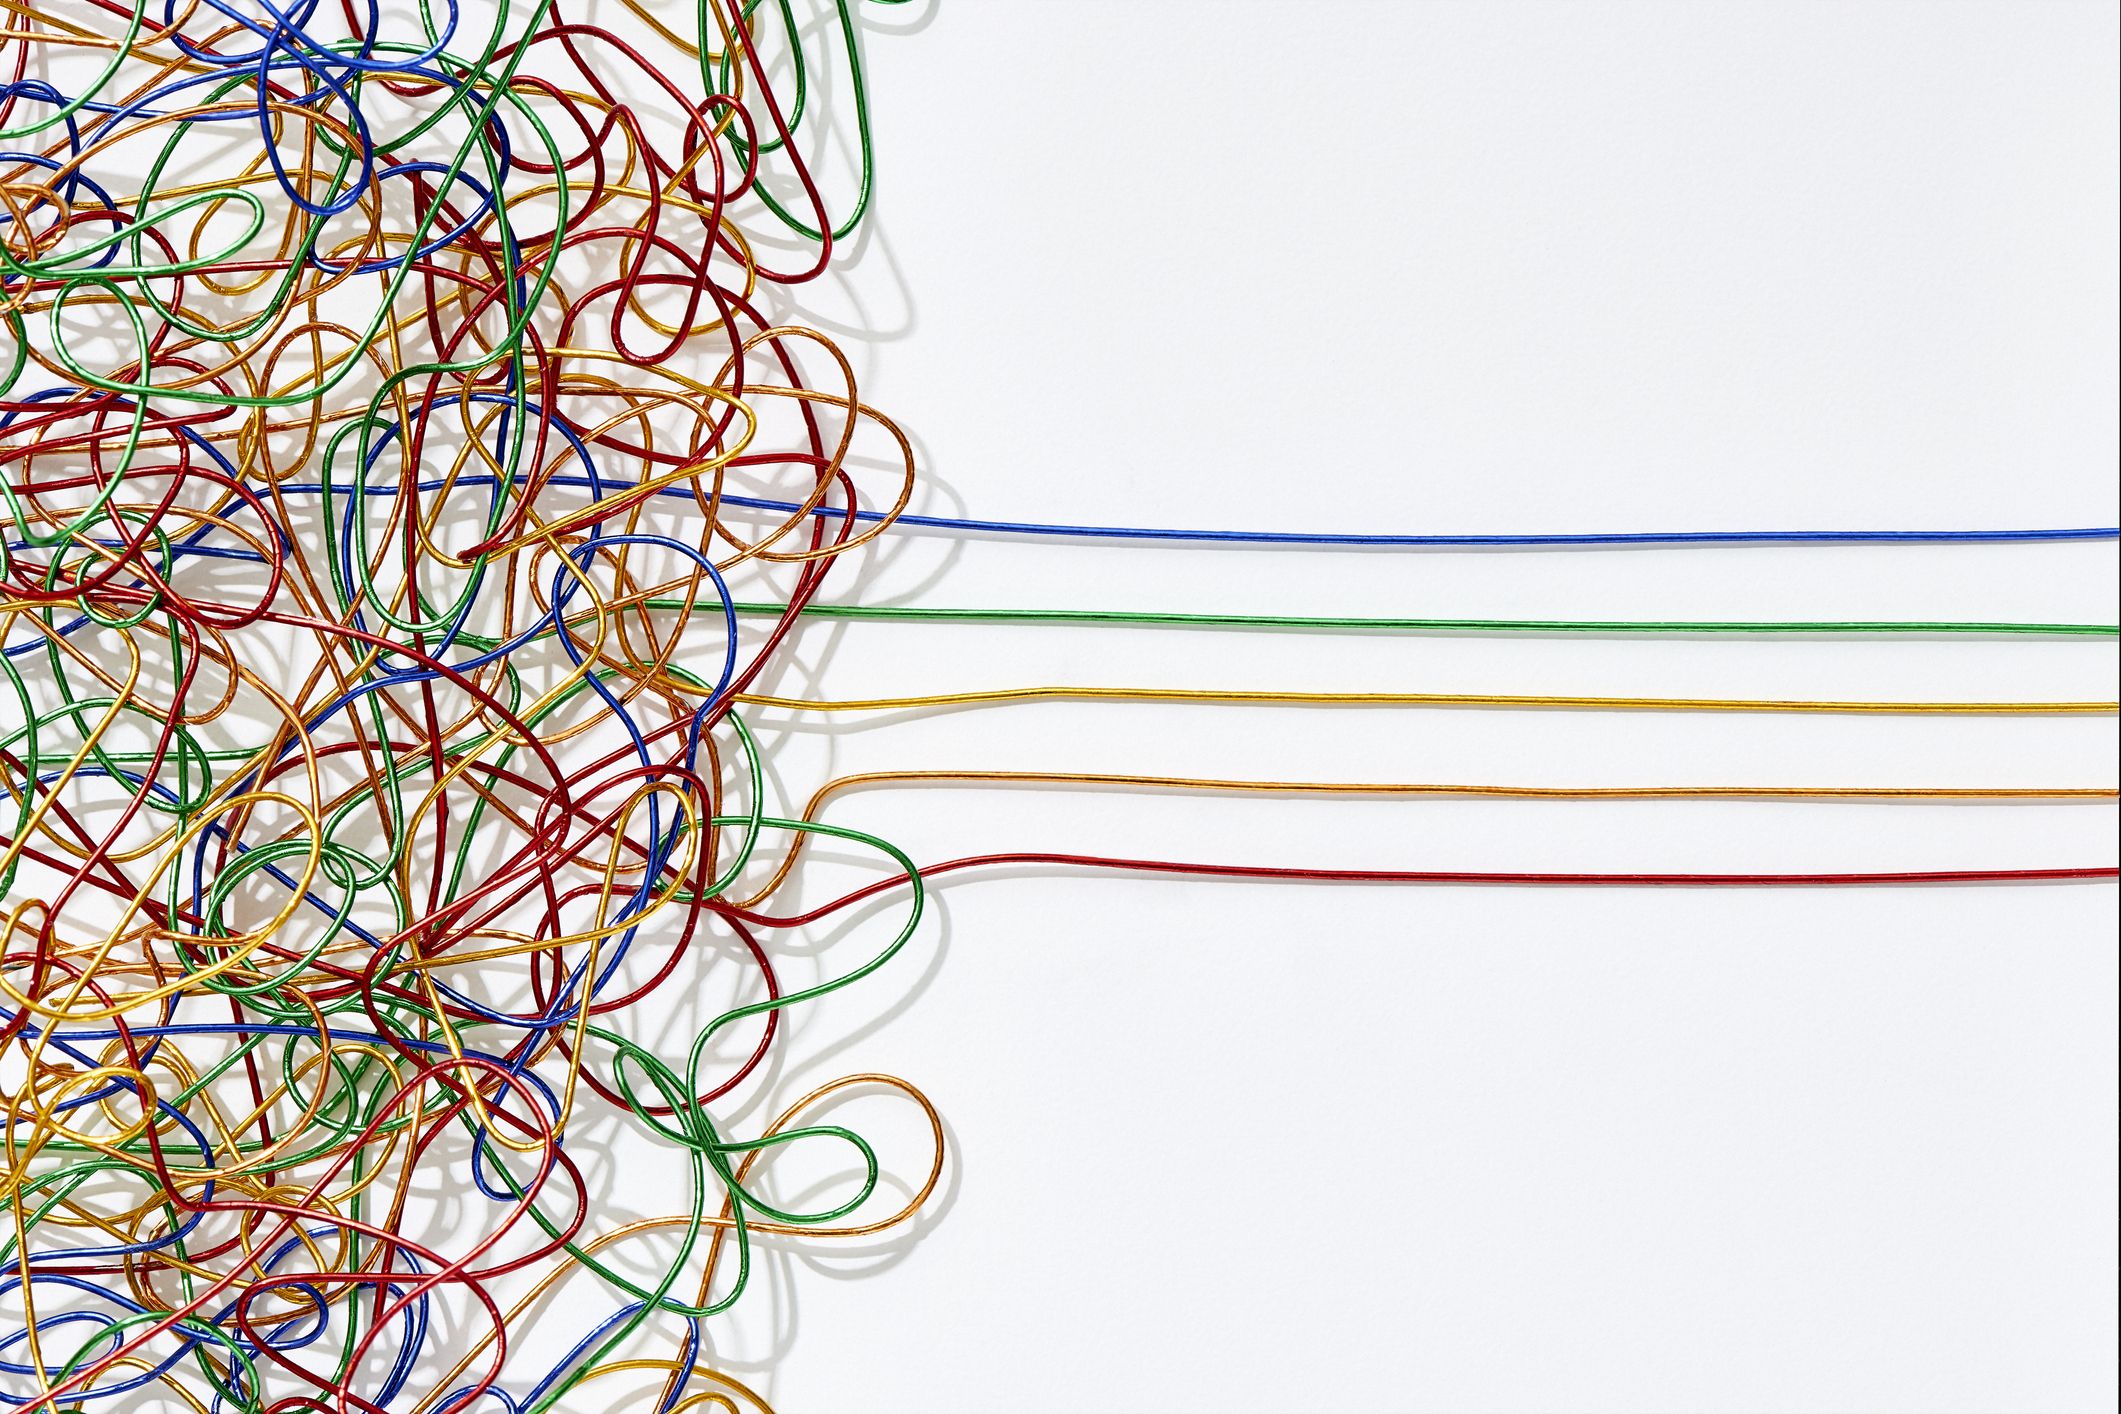 Jumble of multicoloured wires untangling into straight lines over a white background. Cape Town, South Africa. Feb 2019.